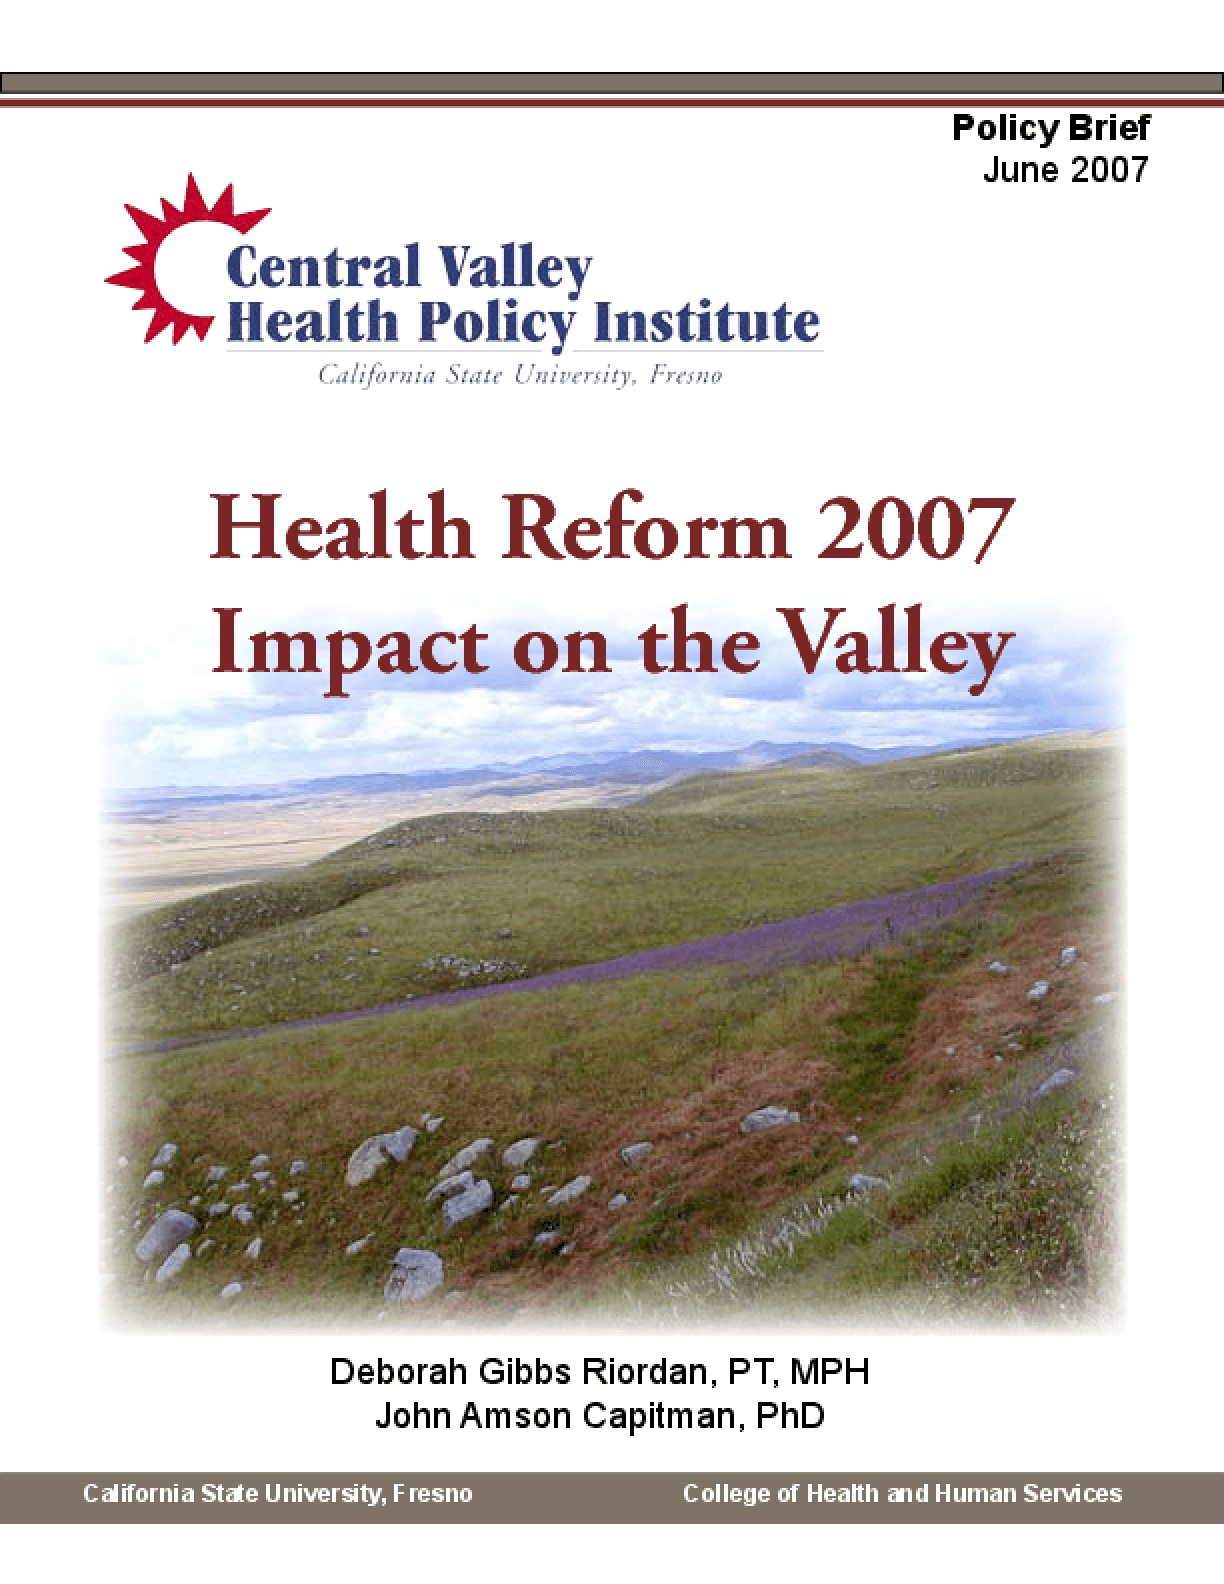 Health Reform 2007: Impact on the Valley